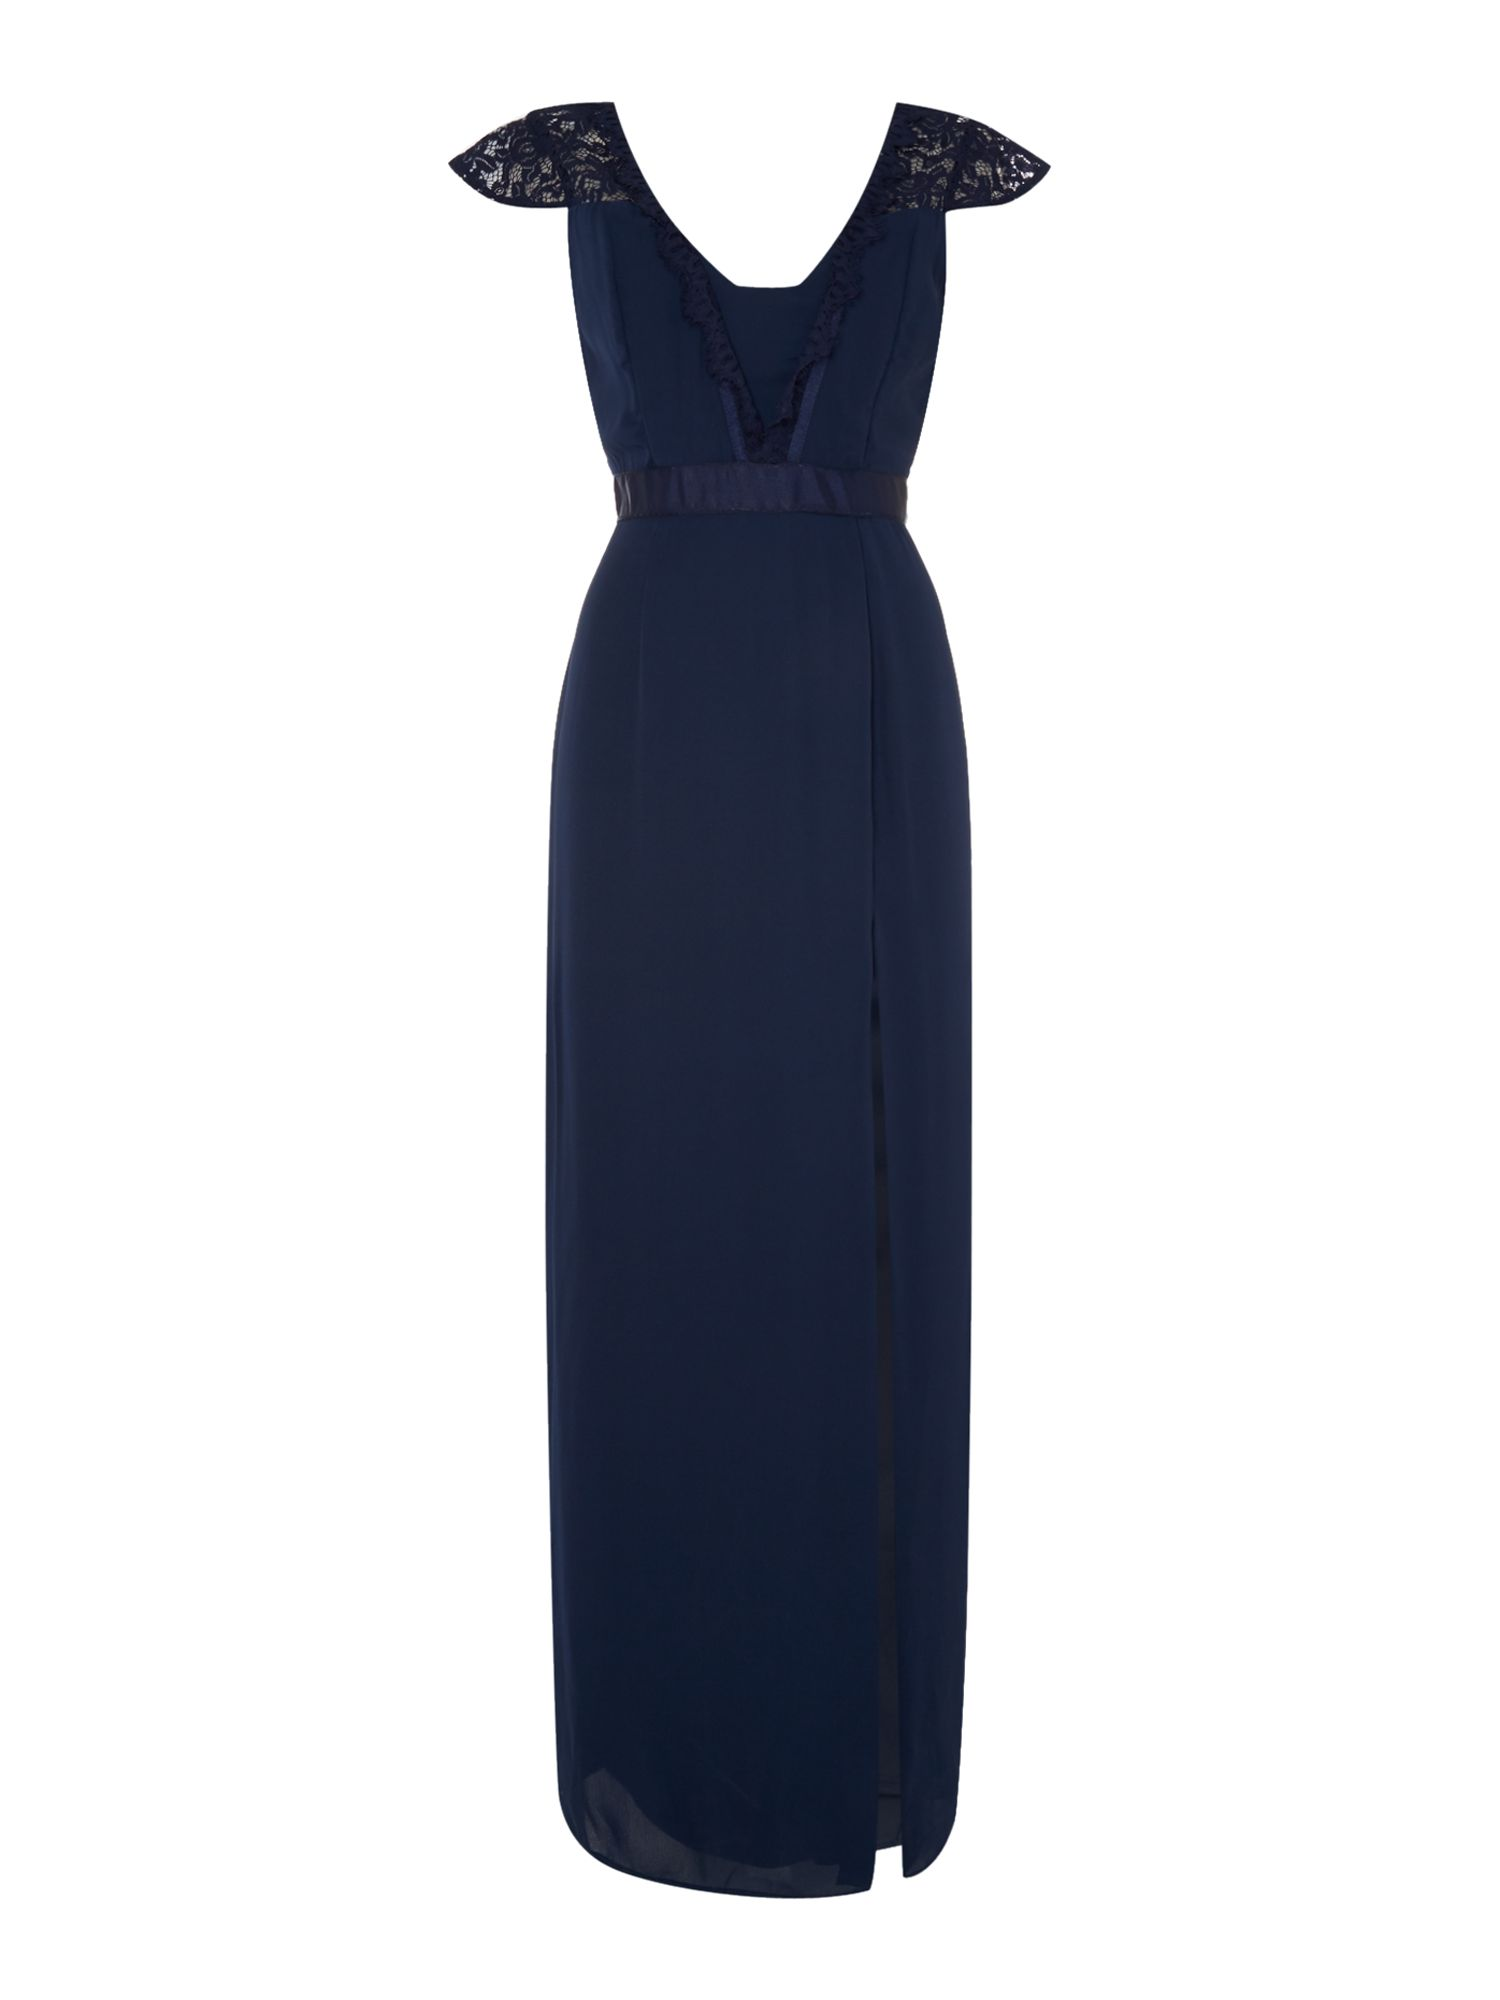 Elise Ryan Elise Ryan Sleeveless V Neck Split Maxi Dress, Navy